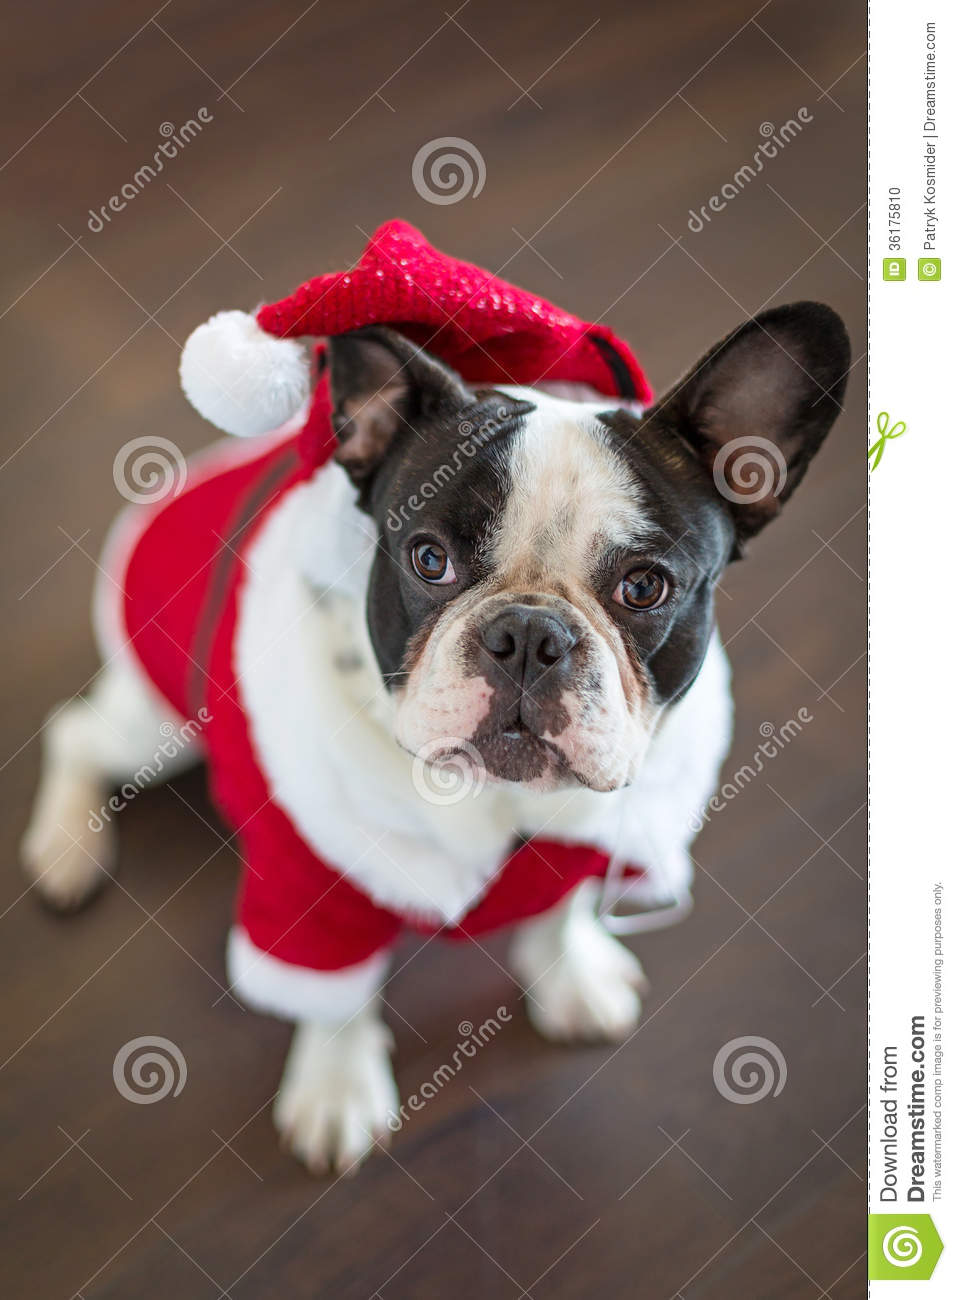 December Wallpaper Cute French Bulldog In Santa Costume For Christmas Stock Photo